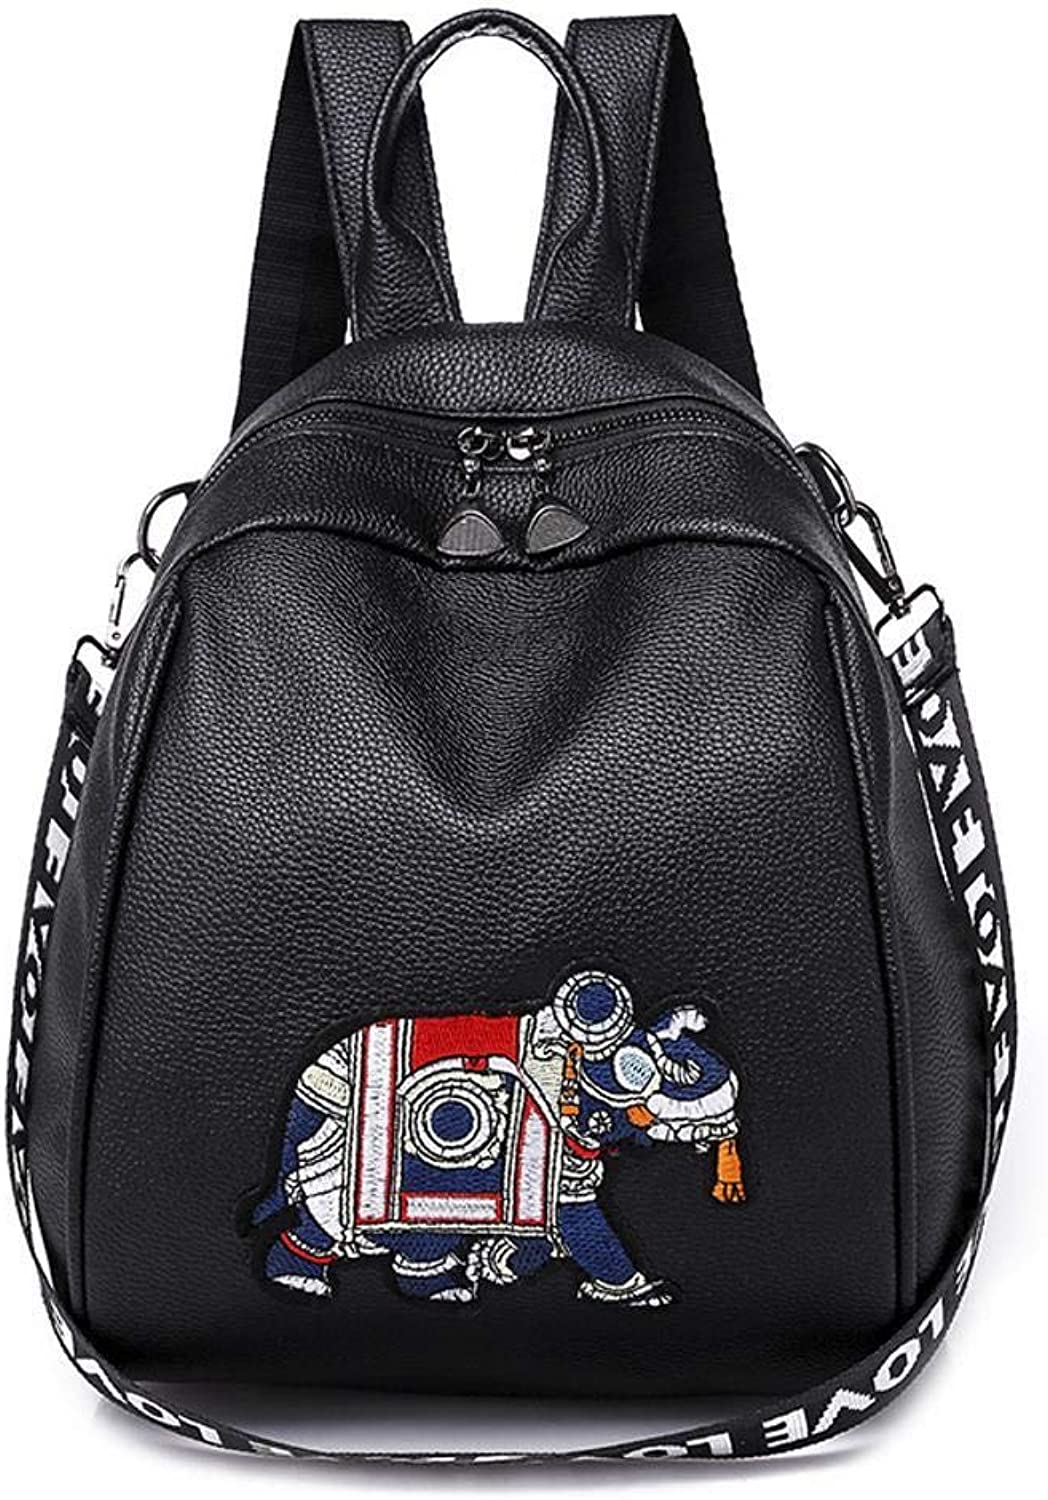 Sxuefang Women Leather Backpack Pu Leather Black and White National Wind Bag Animal Embroidery Fashion Backpack 35x15x23cm